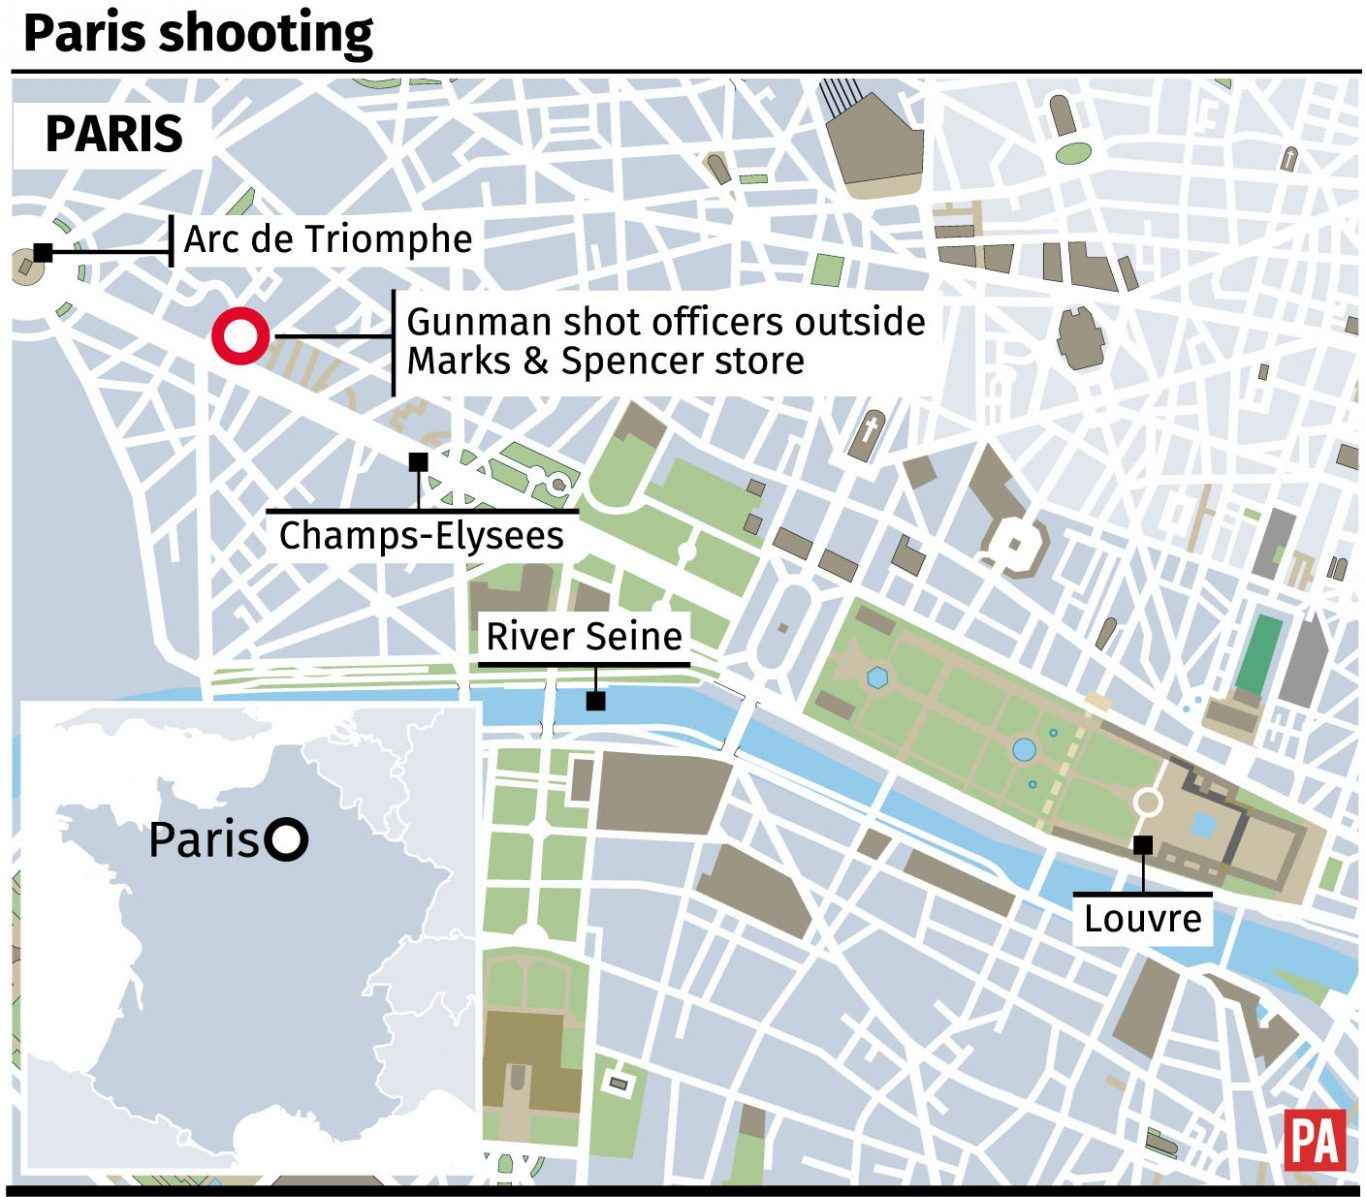 Locates shooting on the Champs-Elysees in Paris